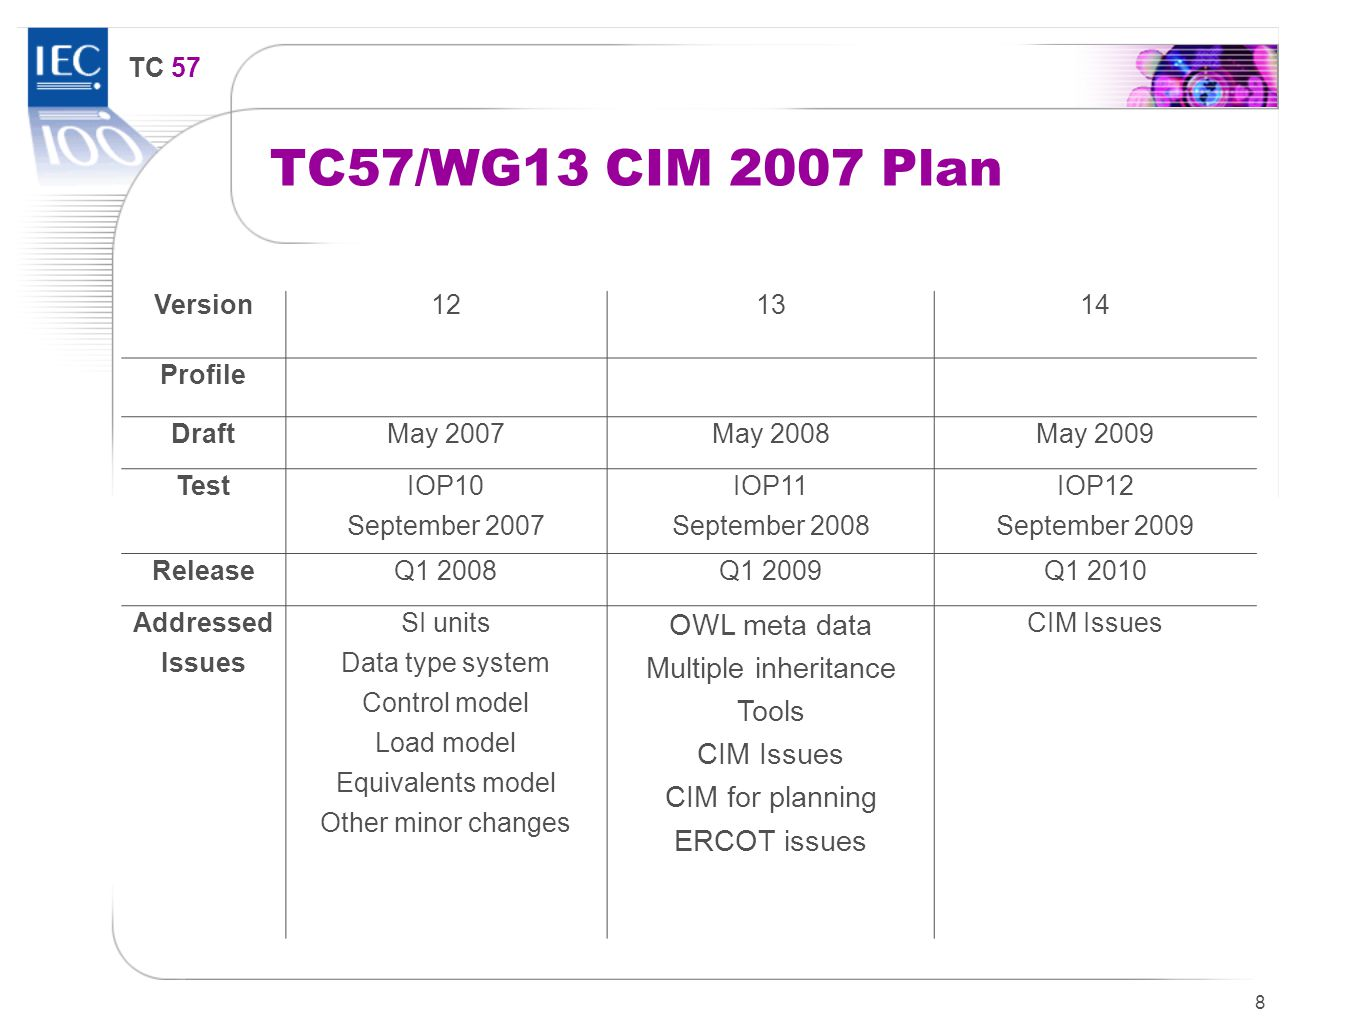 TC 57 8 TC57/WG13 CIM 2007 Plan Version121314 Profile DraftMay 2007May 2008May 2009 Test IOP10 September 2007 IOP11 September 2008 IOP12 September 2009 ReleaseQ1 2008Q1 2009Q1 2010 Addressed Issues SI units Data type system Control model Load model Equivalents model Other minor changes OWL meta data Multiple inheritance Tools CIM Issues CIM for planning ERCOT issues CIM Issues